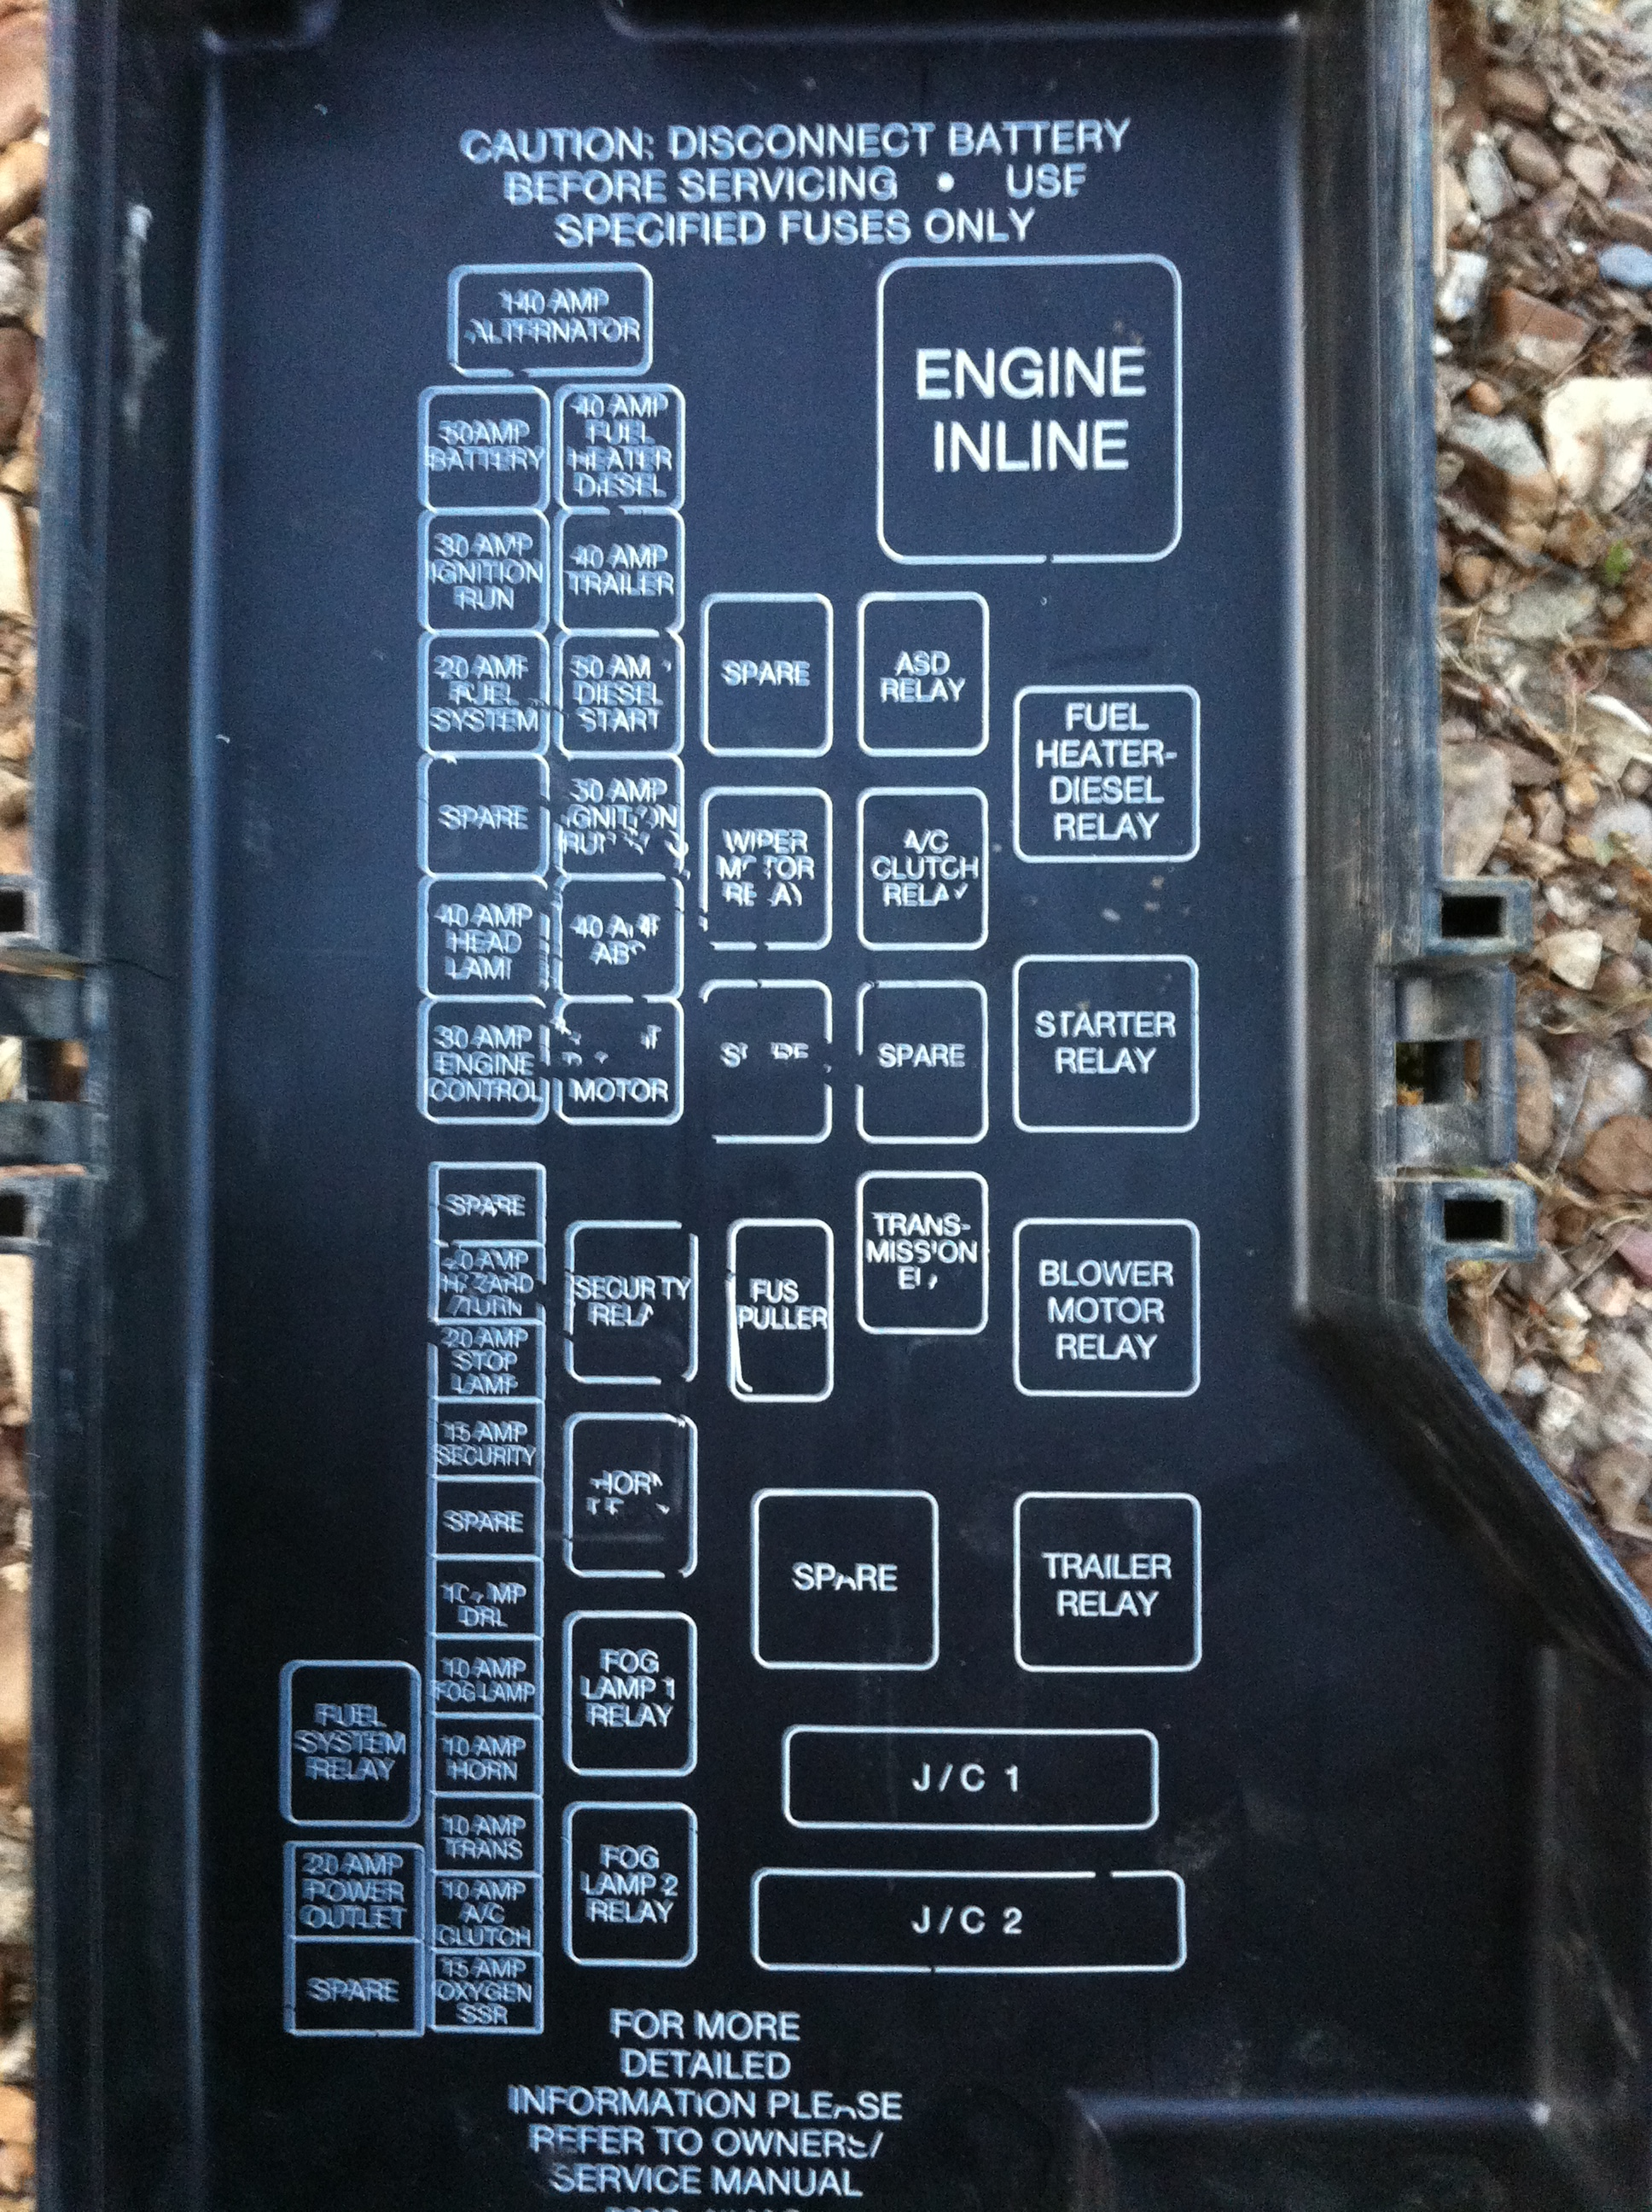 2012 05 22_134436_006 98 dodge ram fuse box diagram 08 dodge ram fuse box diagram \u2022 free Dodge Dakota Fuse Box Location at fashall.co